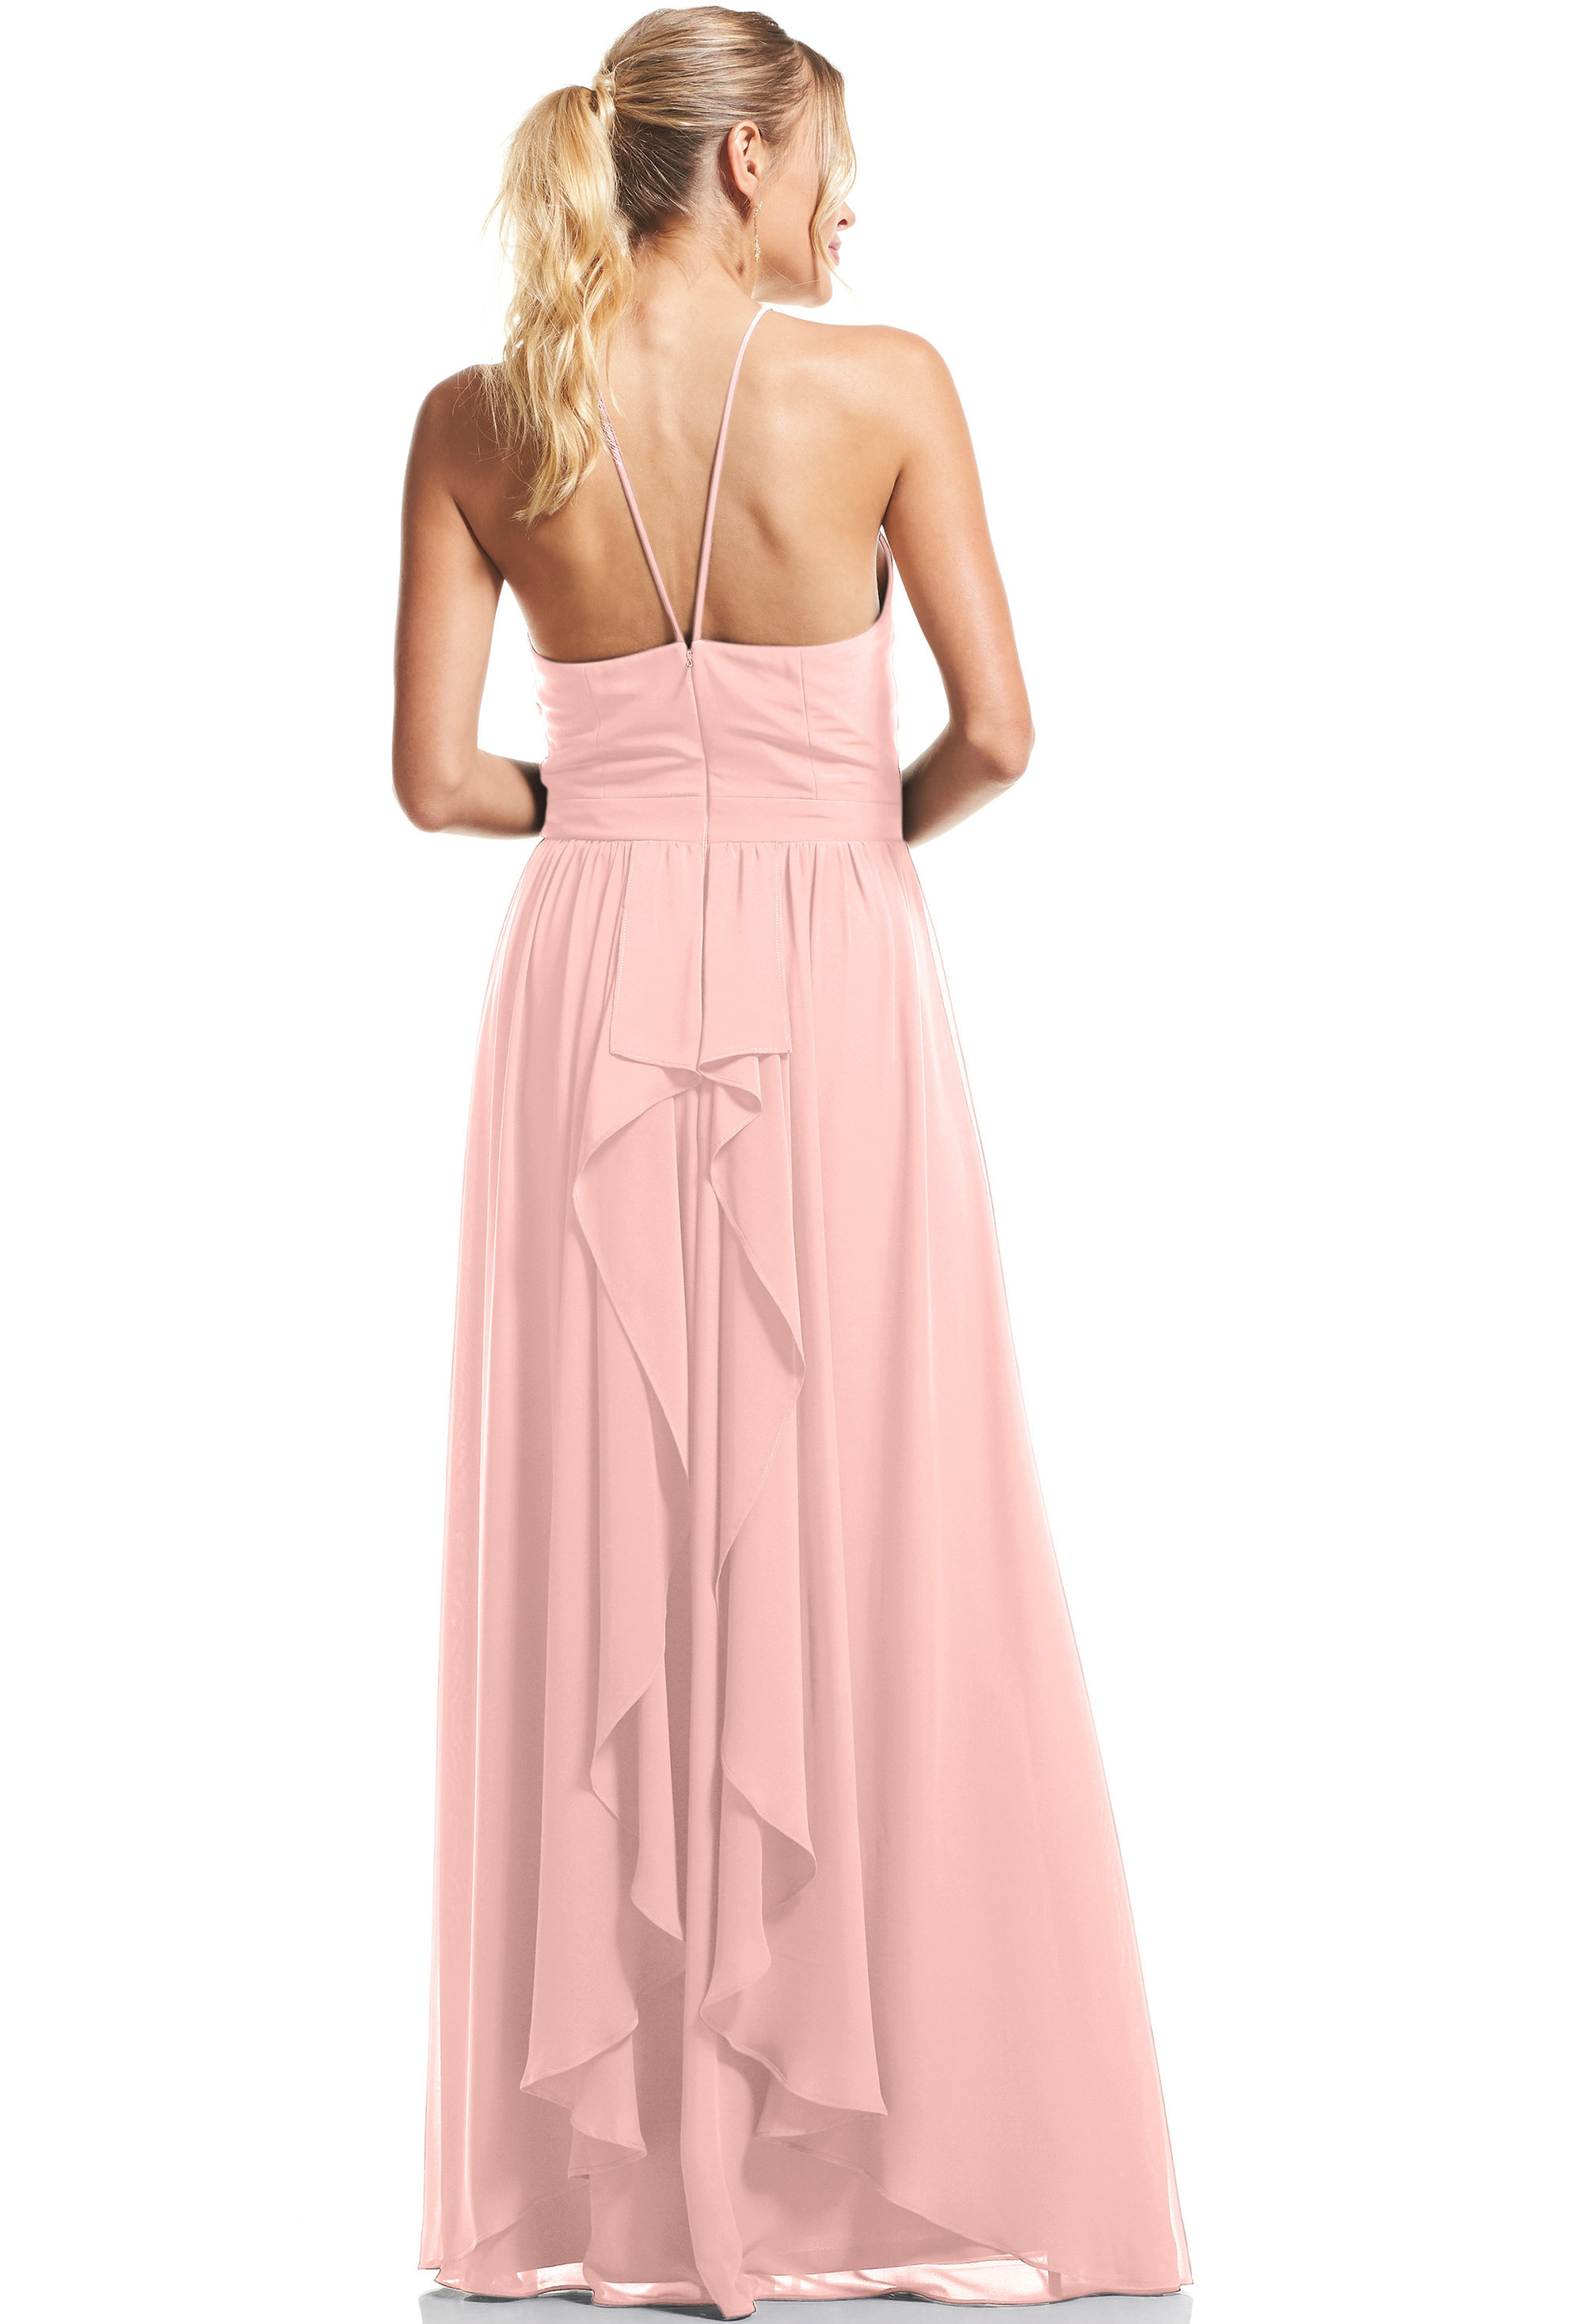 Bill Levkoff FROST ROSE Chiffon Halter A-Line gown, $89.00 Back